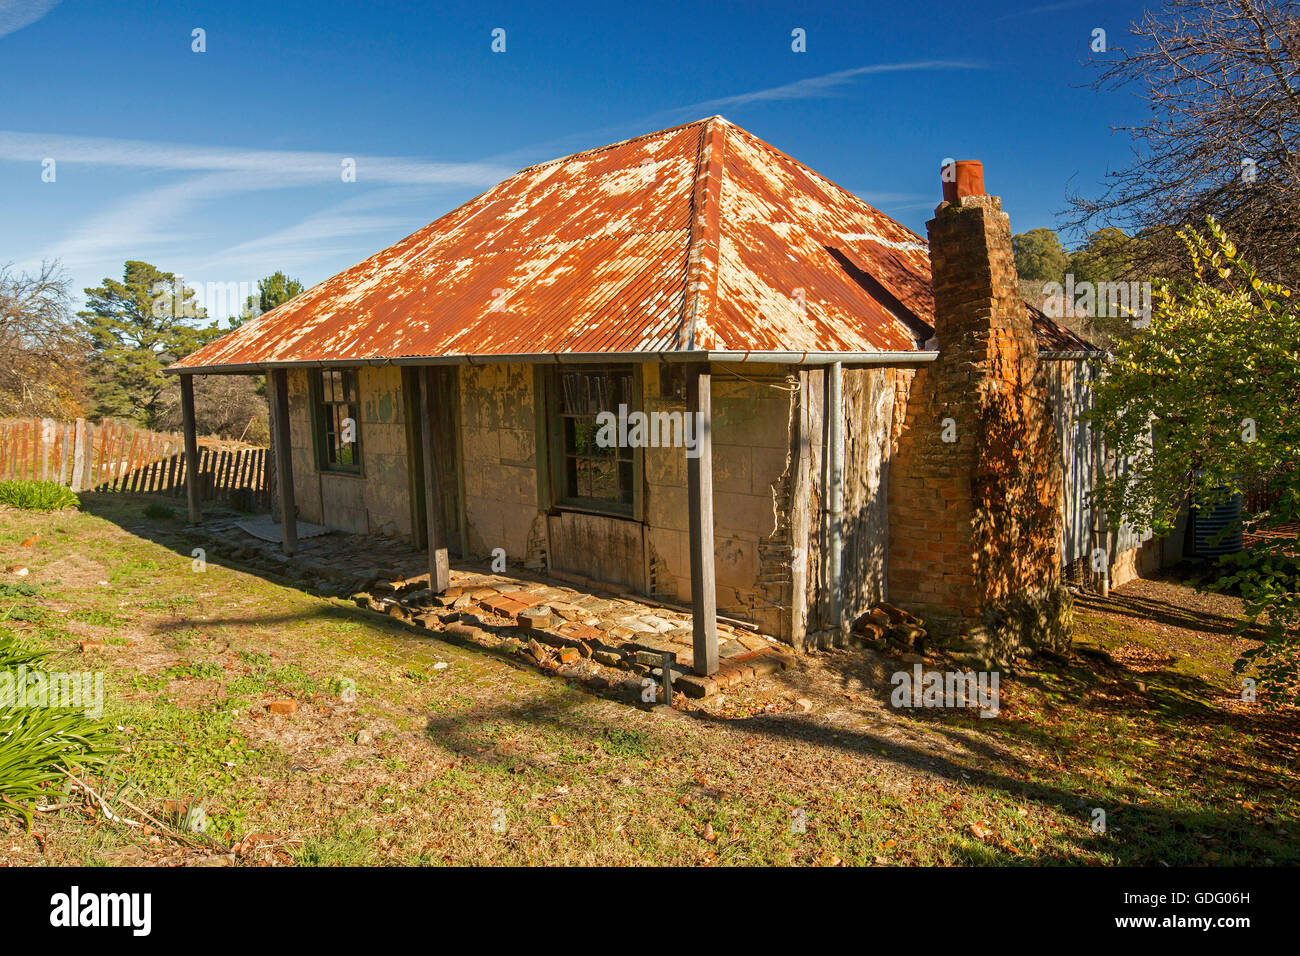 Historic building, old  miner's cottage with rusty roof, red brick chimney, flaking paint, against blue sky at Hill Stock Photo